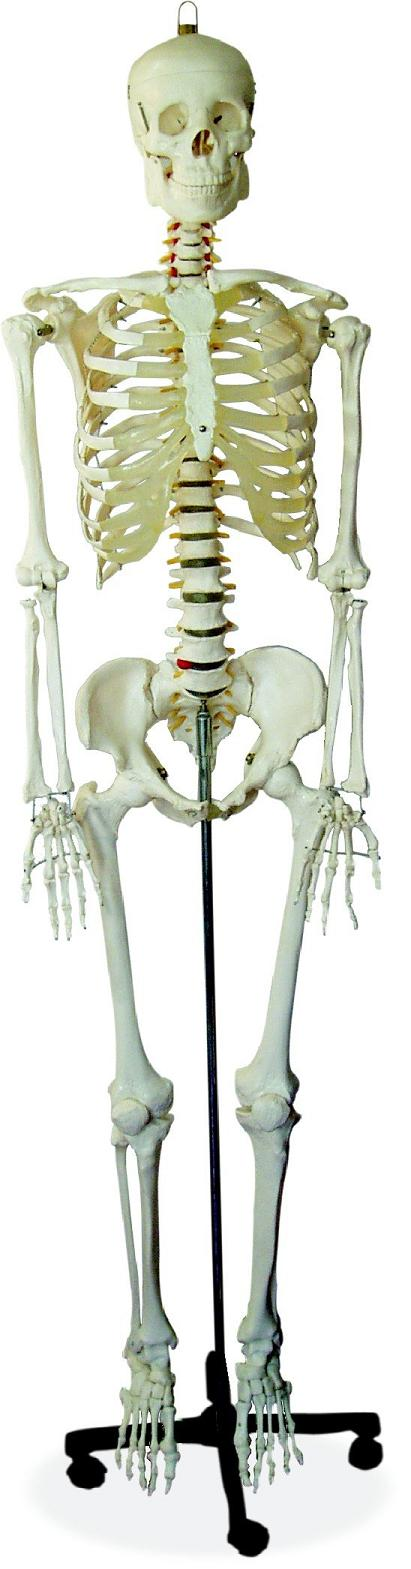 85cm Skeleton with Spinal Nerves